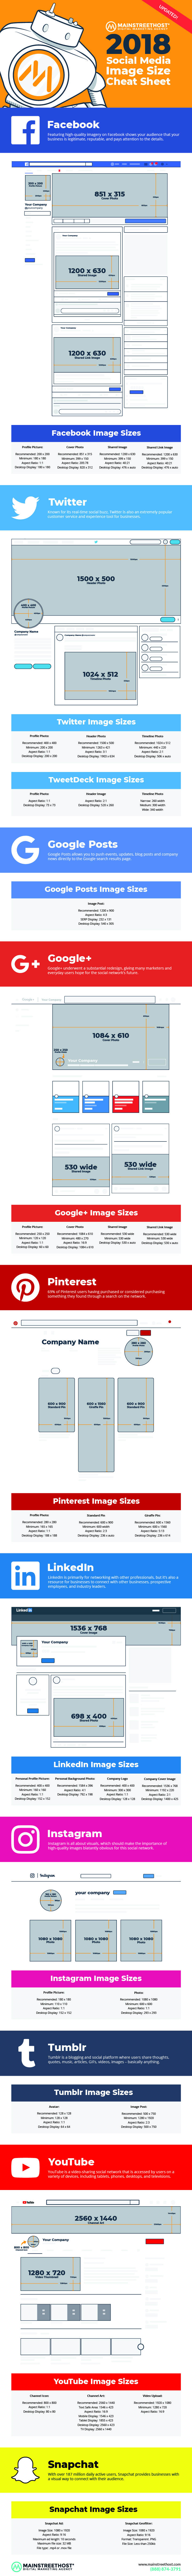 2018 social media image dimensions cheat sheet